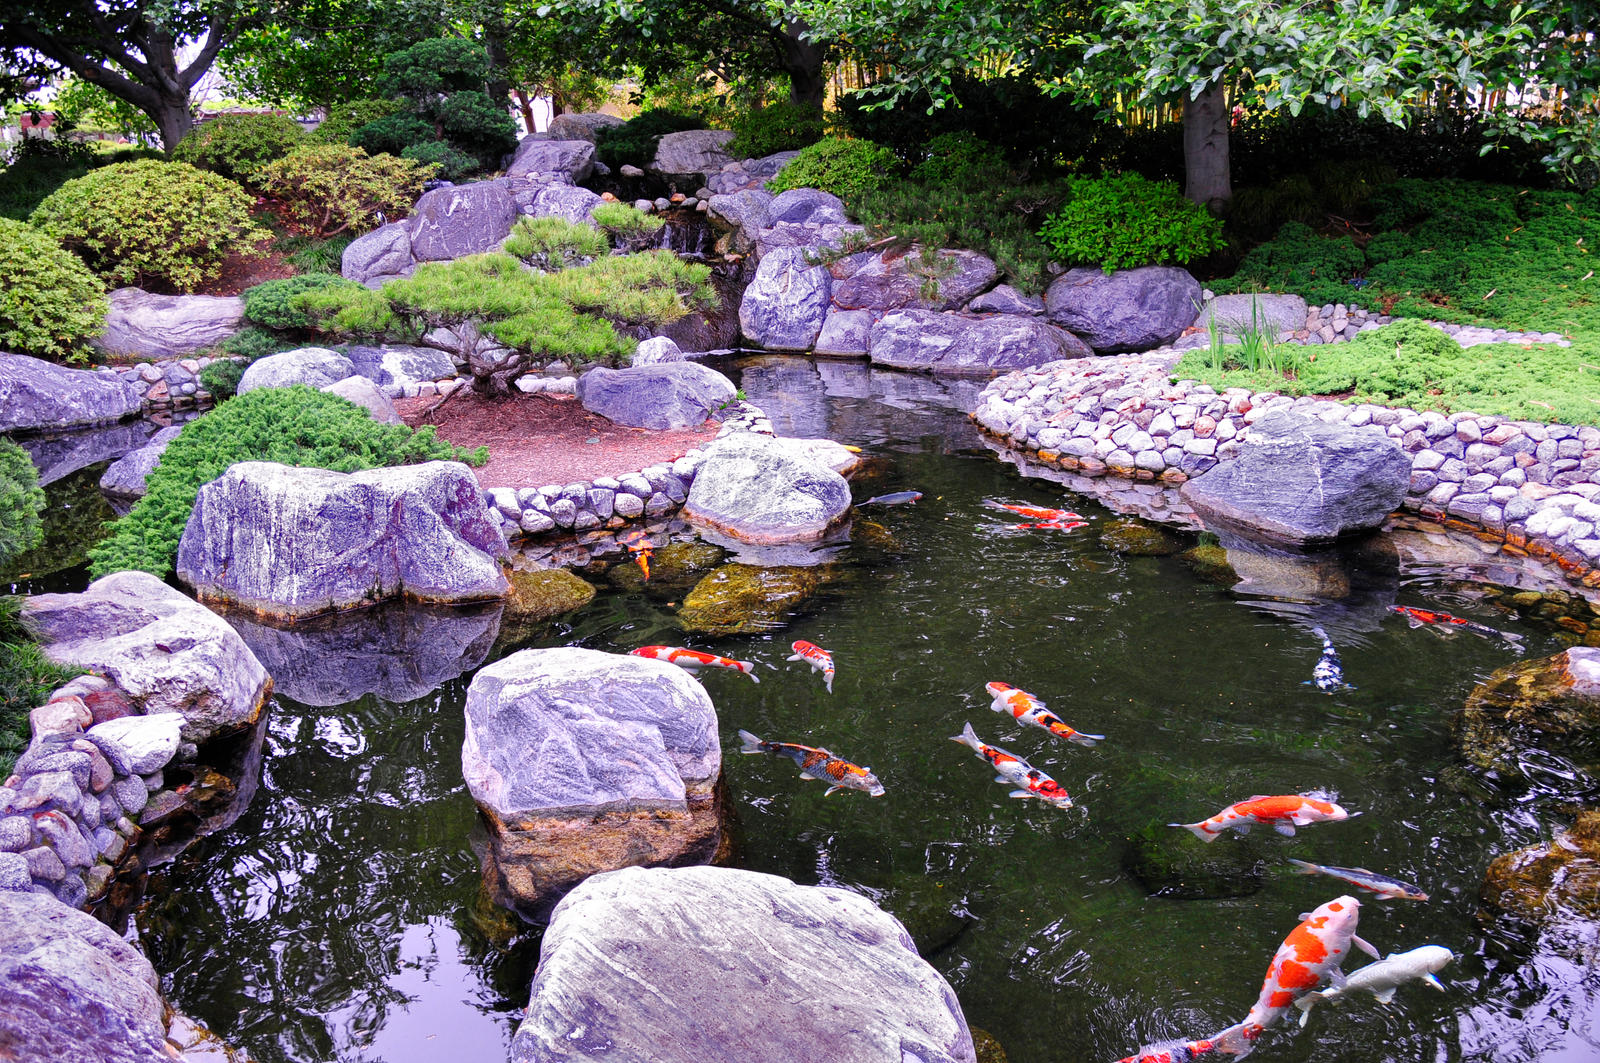 Japanese garden tranquil koi by andyserrano on deviantart for Japanese garden with koi pond